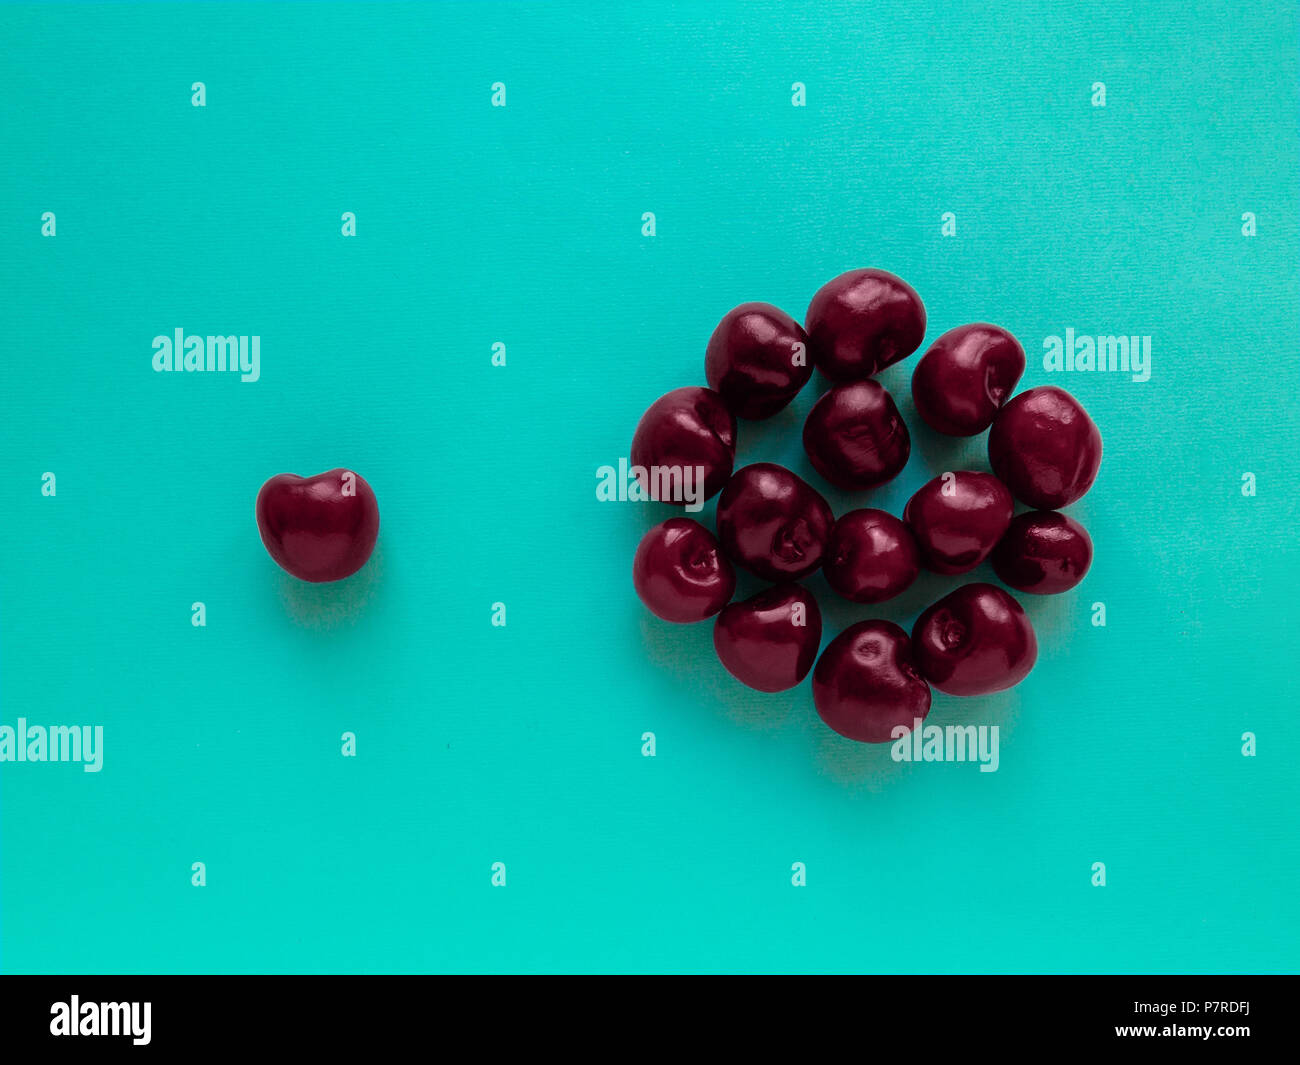 Cherry Top view Many ripe cherries are lying in the round shape on blue background Flat lay photo - Stock Image